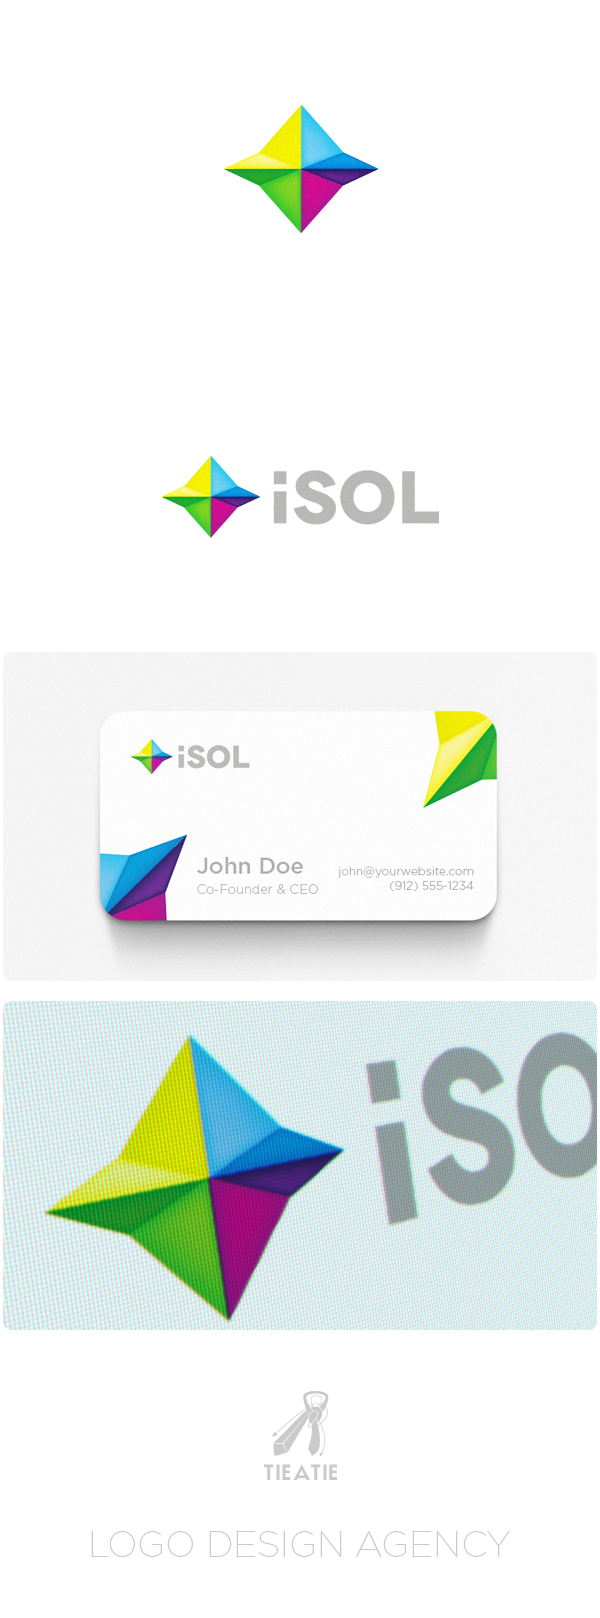 isol project iSOL Branding